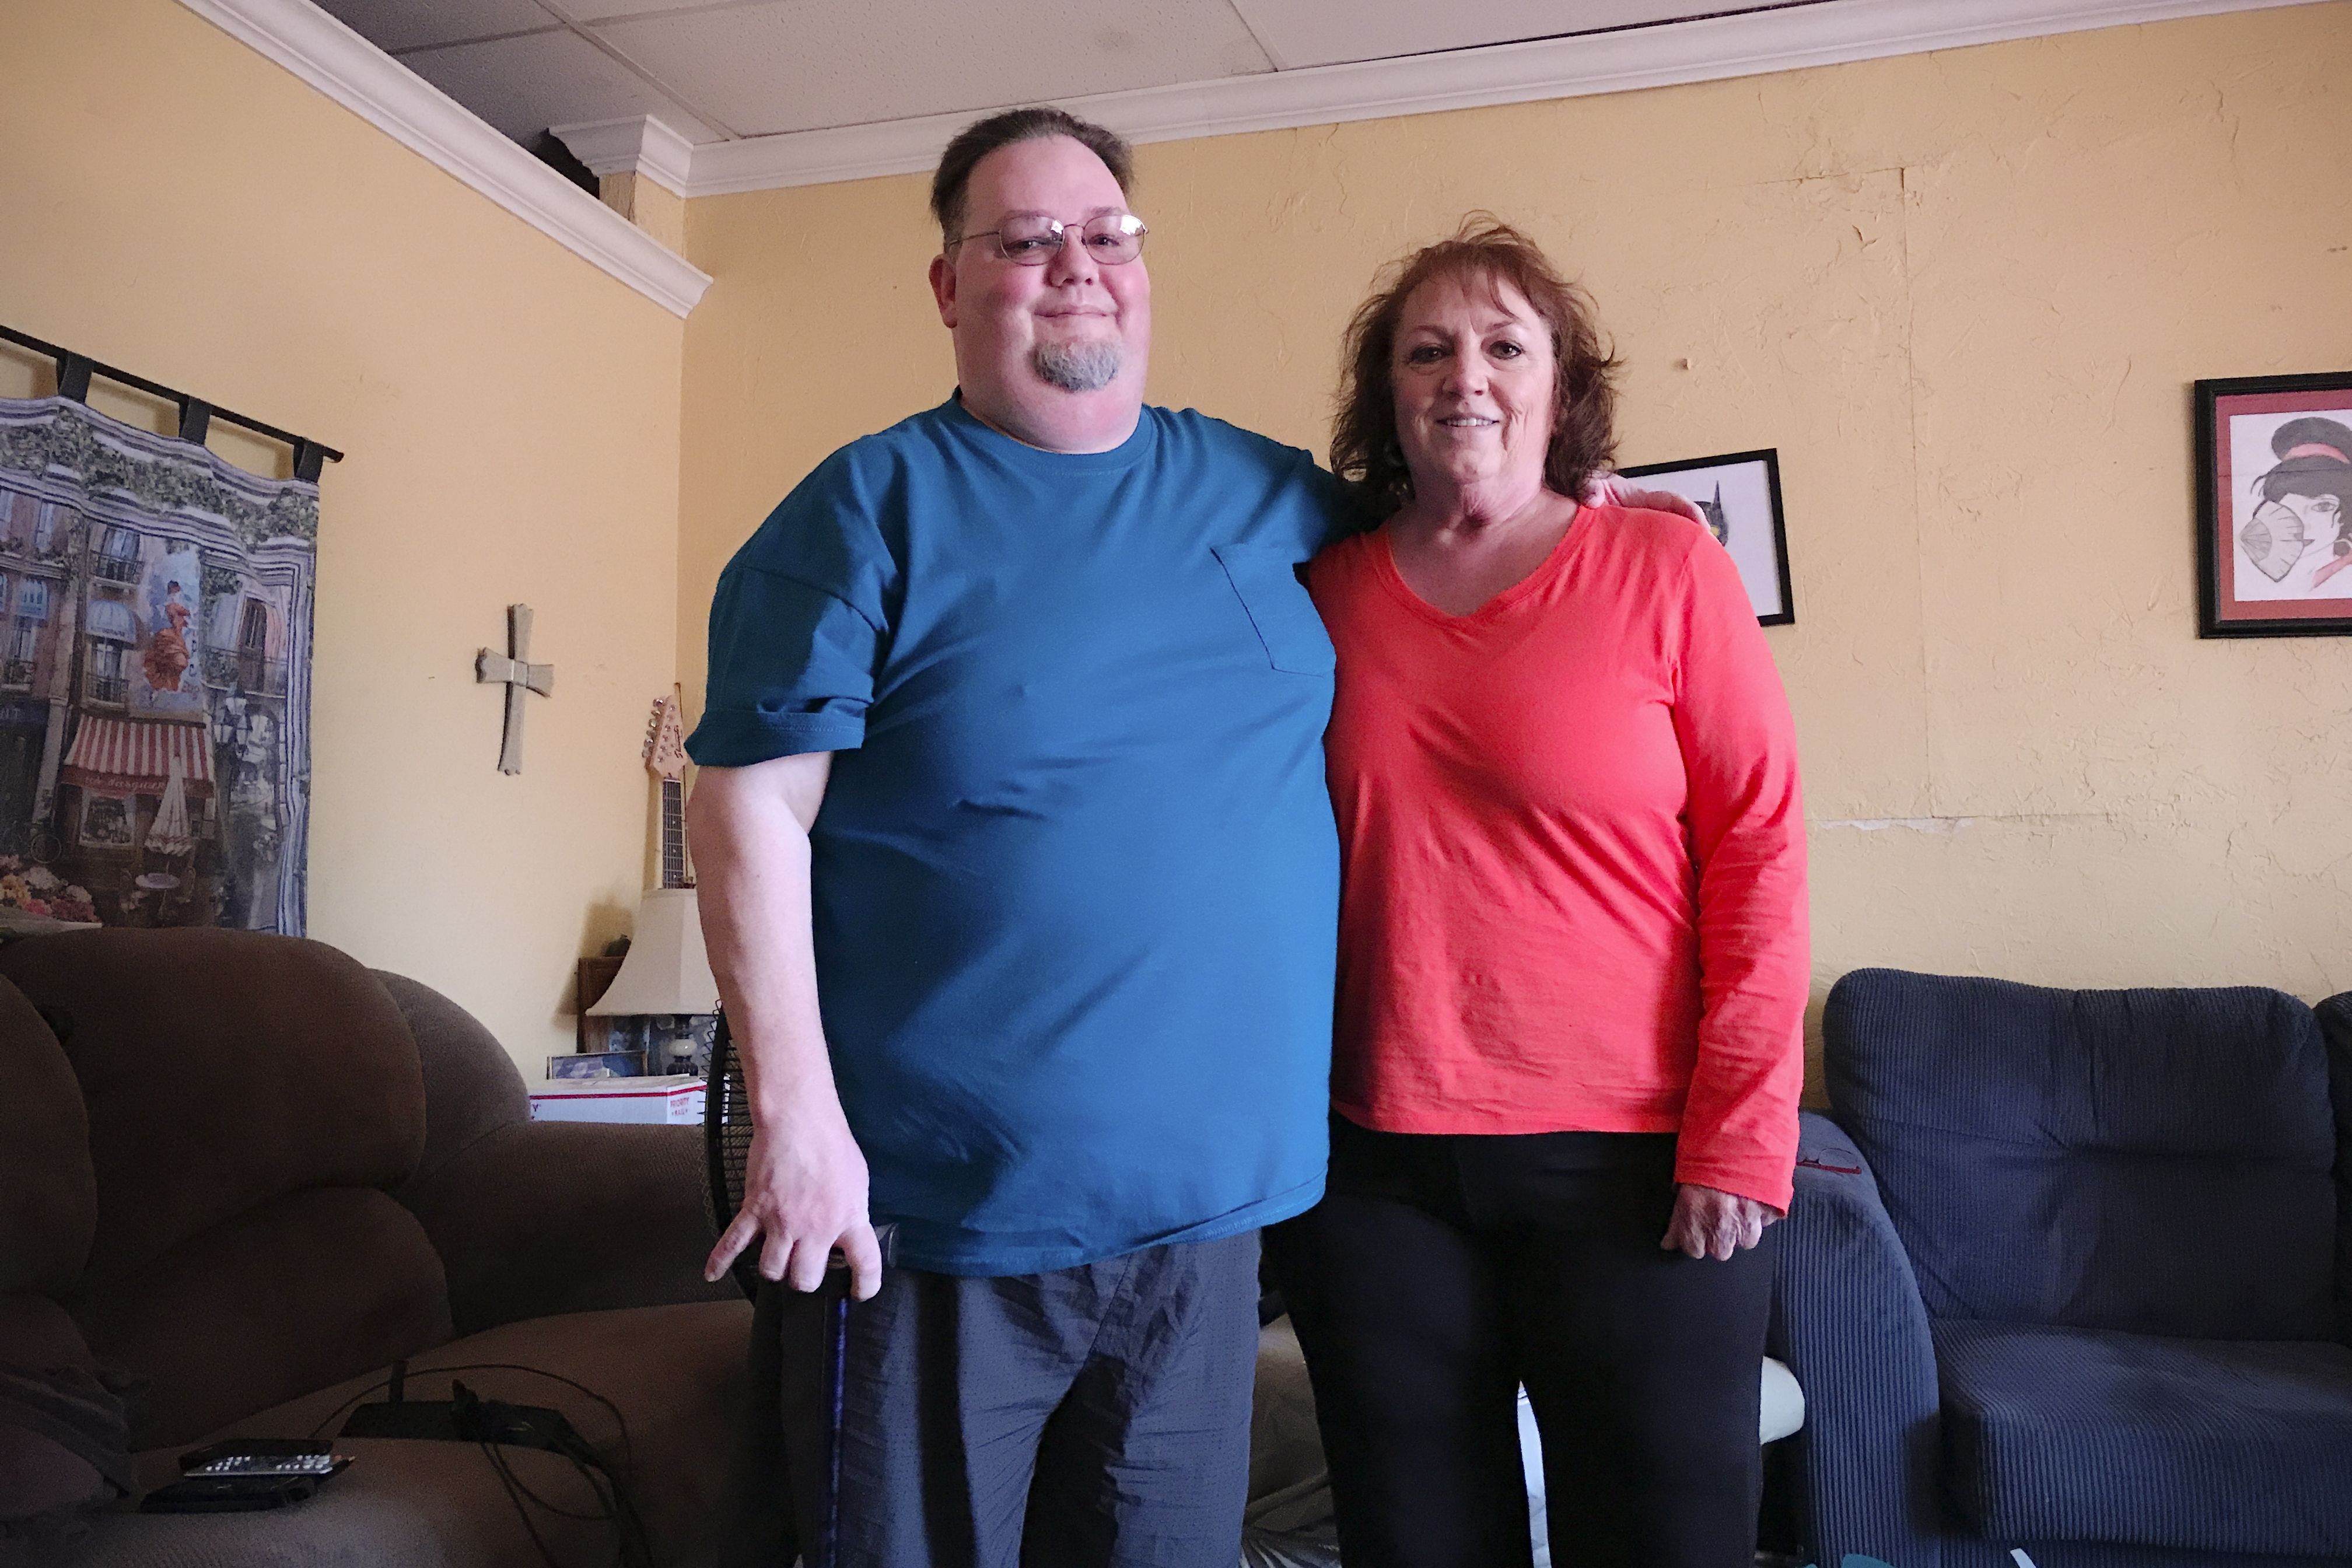 Randy Pitts with his mother, Diane.